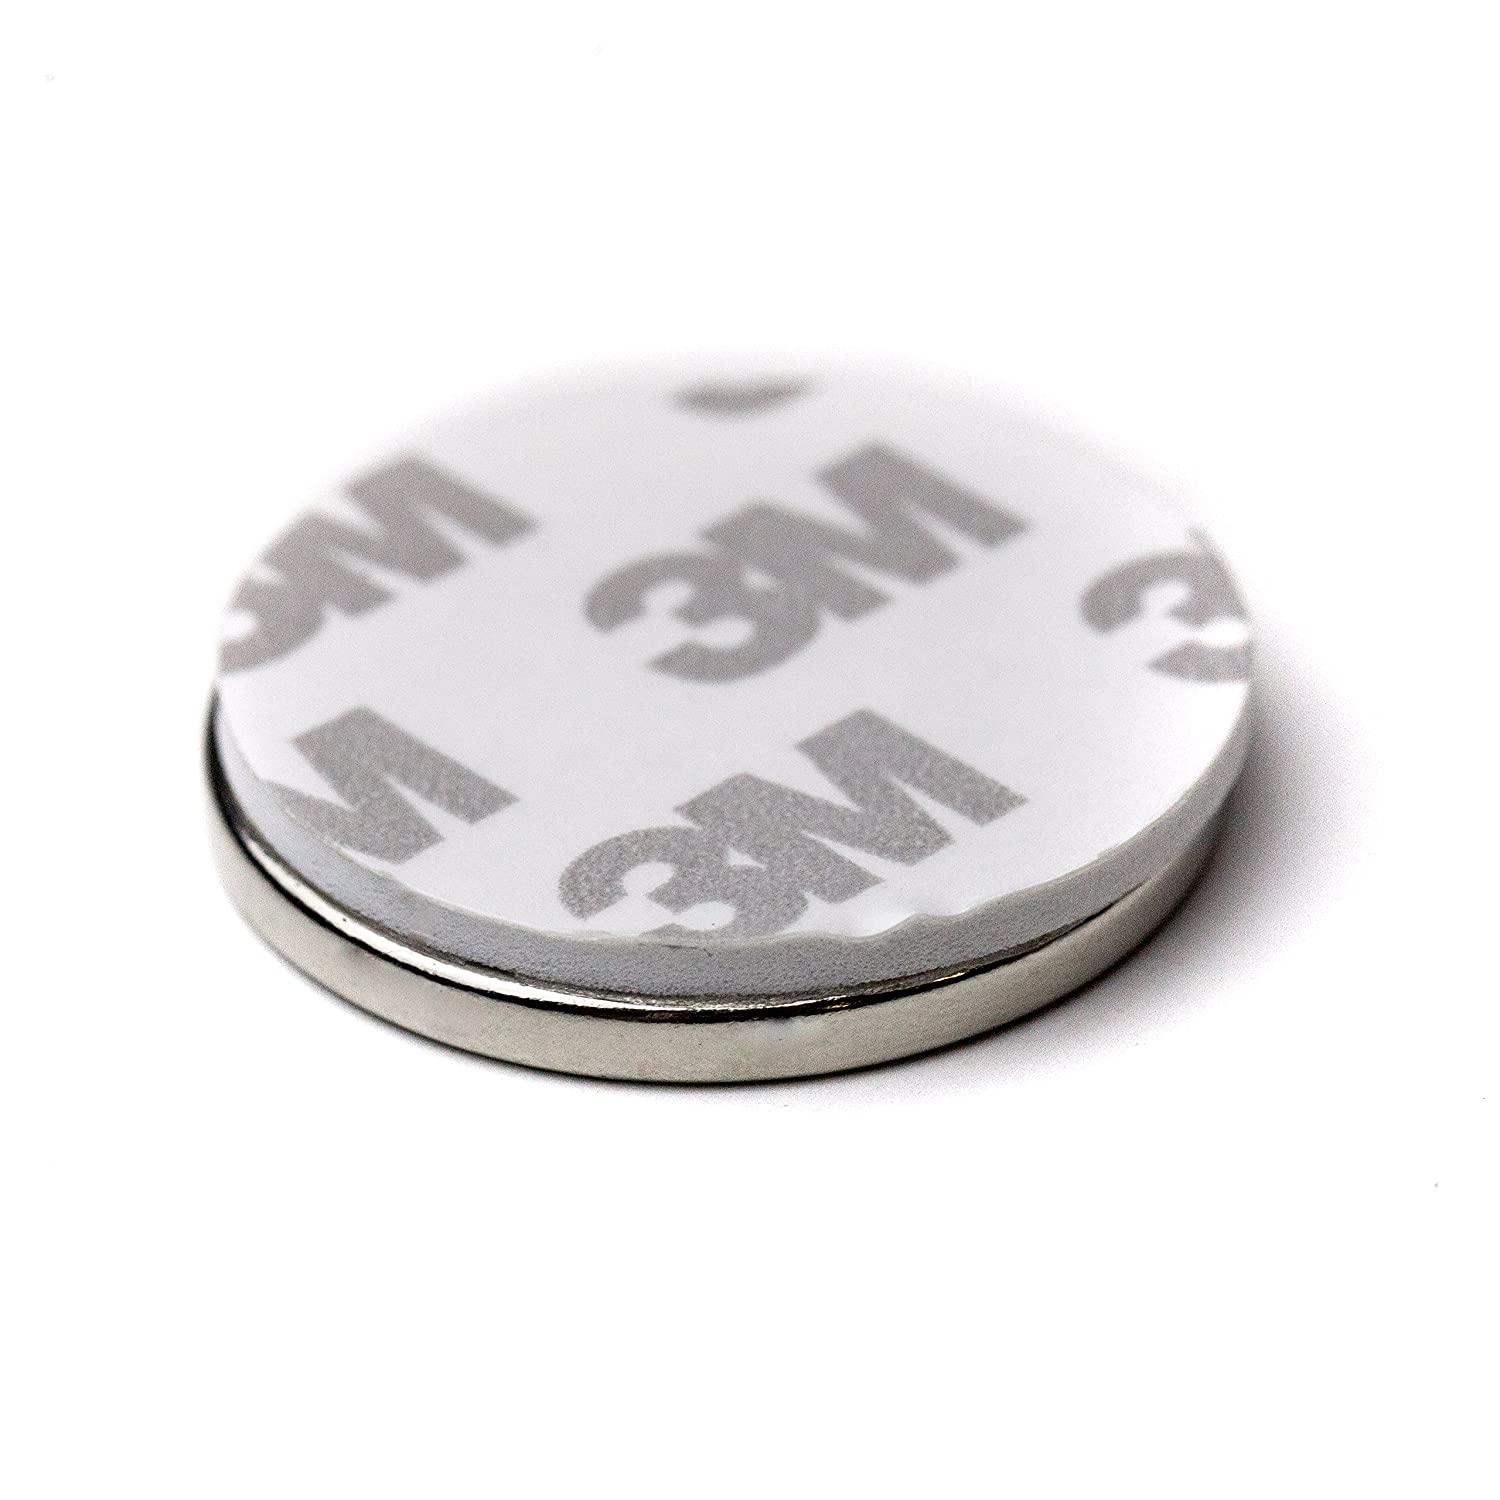 """6Pc Super Strong N42 Neodymium Magnet 1.26"""" x 1/8"""" NdFeB Discs, The World's Strongest & Most Powerful Rare Earth Magnets by Applied Magnets W/ 3M Adhesive"""